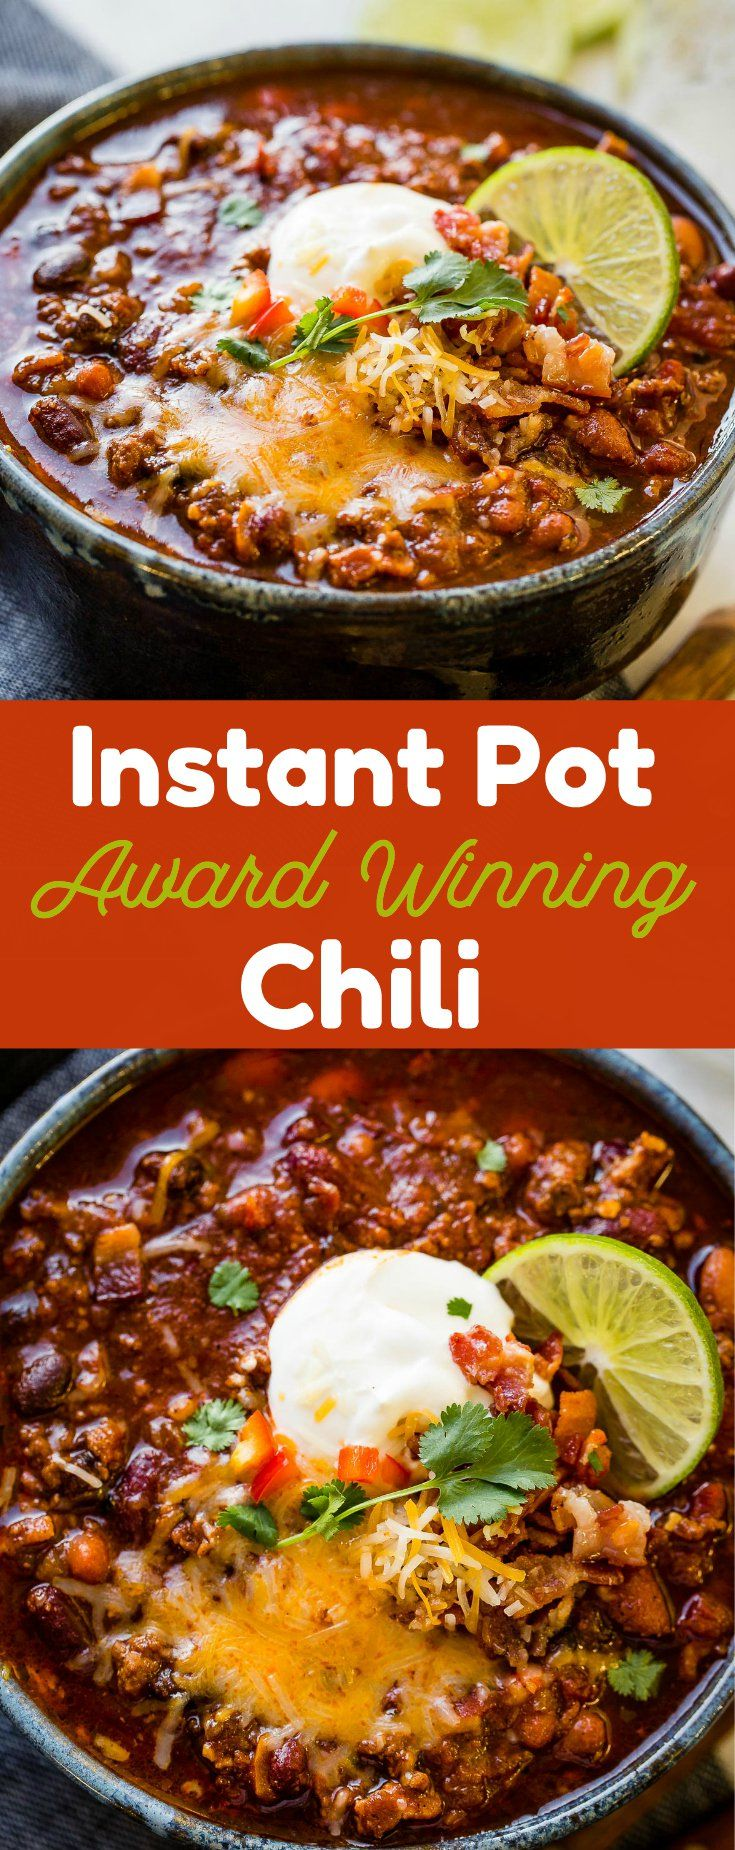 The BEST Instant Pot Chili {Award Winning} Recipe - Oh Sweet Basil